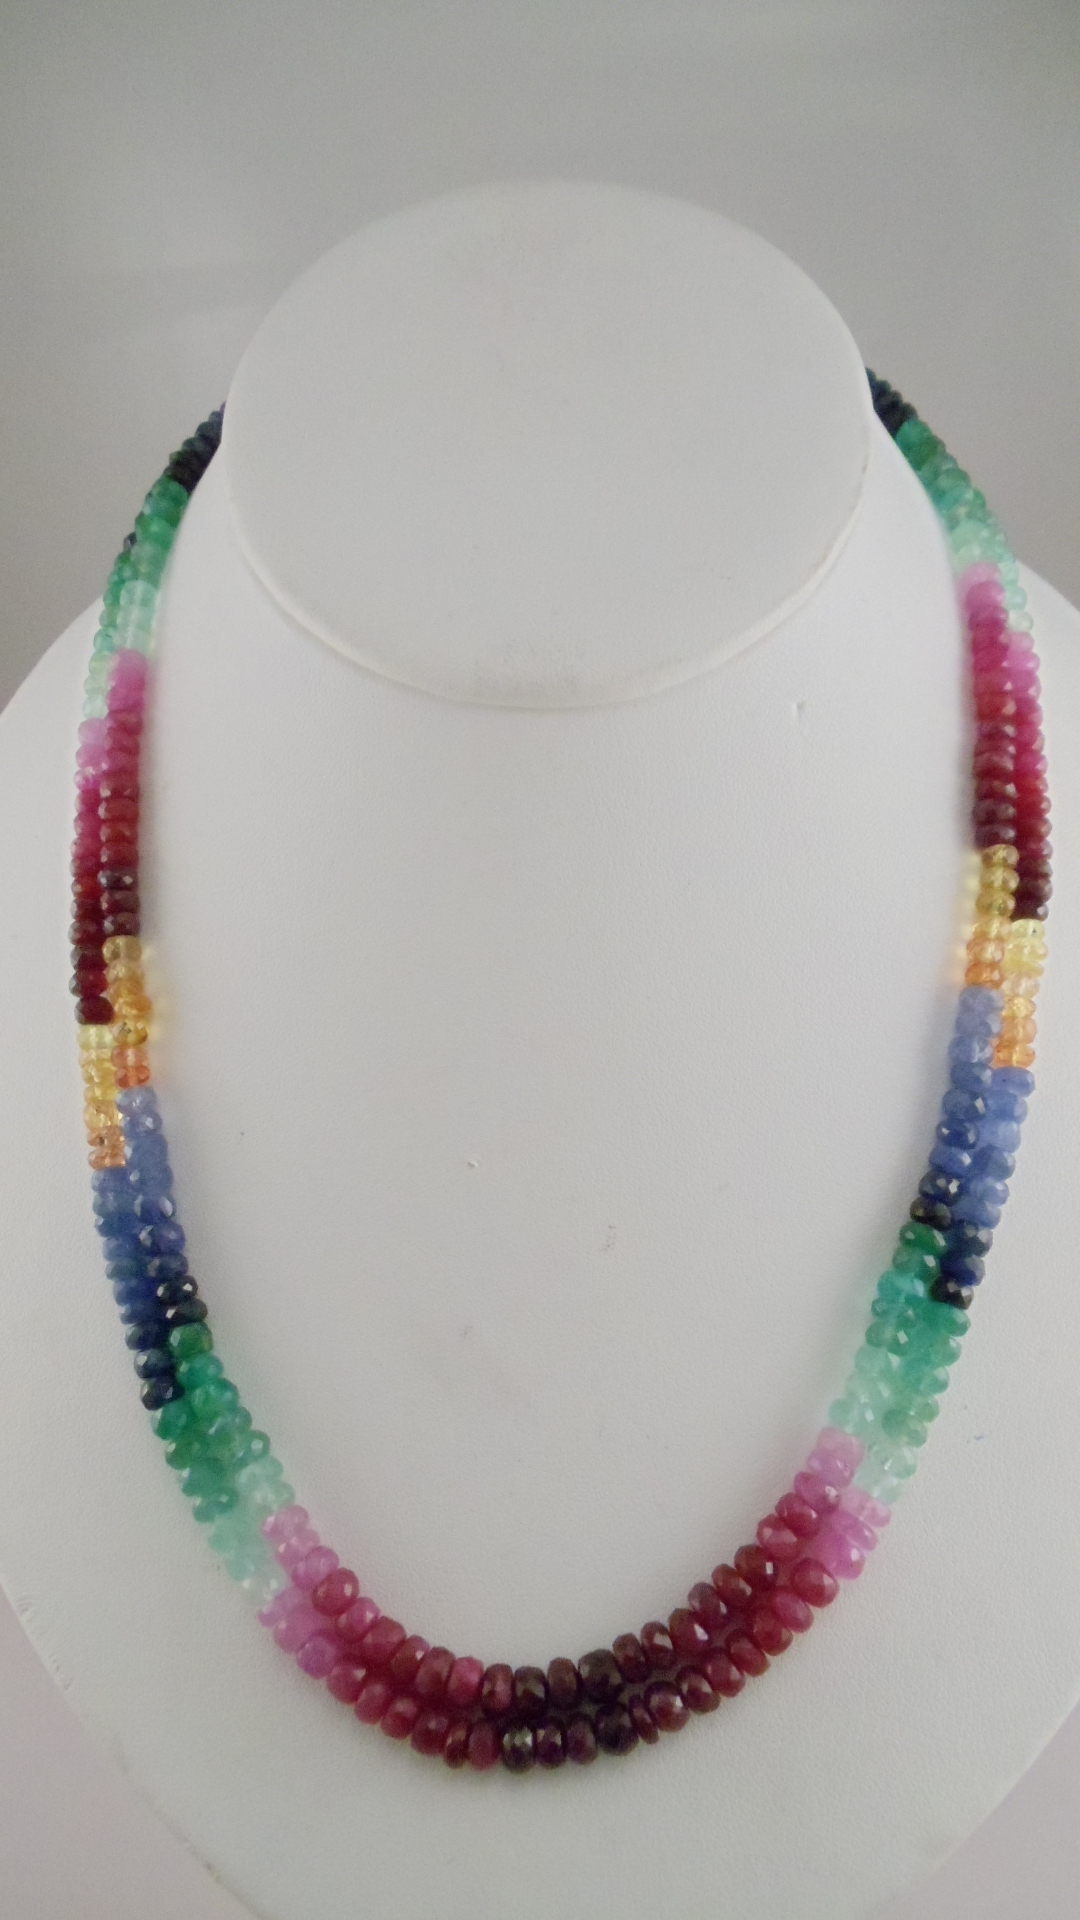 Ruby sapphire and emerald facetted multi color necklaces genuine ruby sapphire emerald facetted beads bead size 45mm to 55mm graduated double layer necklace 16 long necklace us 260 code m 01a mozeypictures Gallery